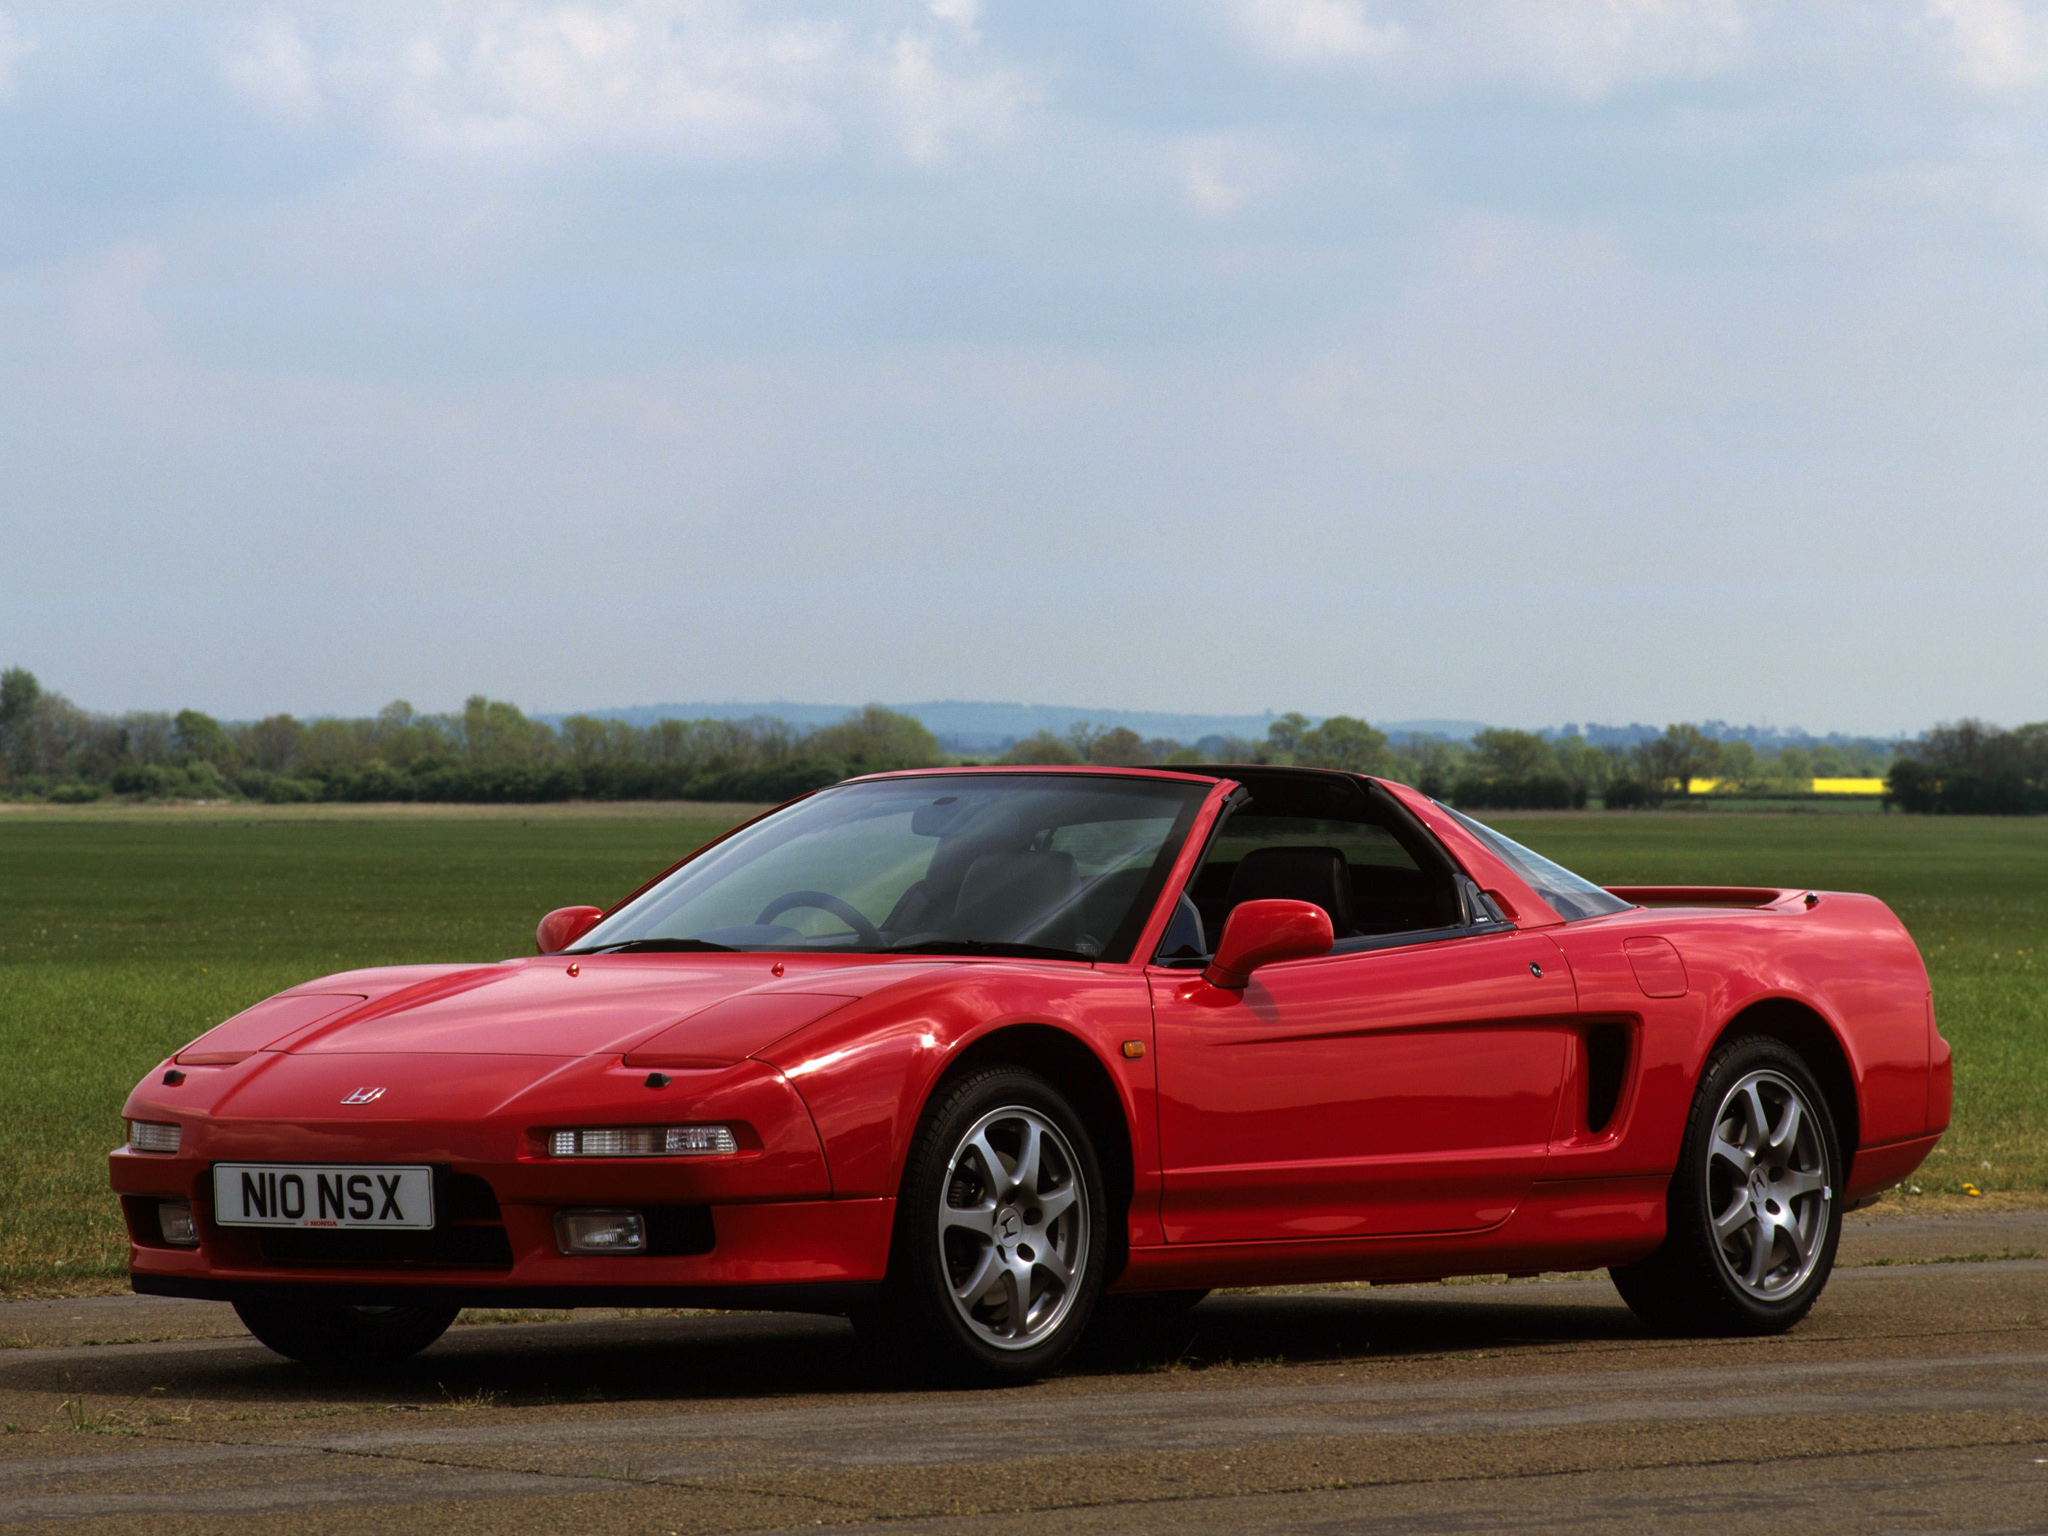 Honda nsx-t photo - 4